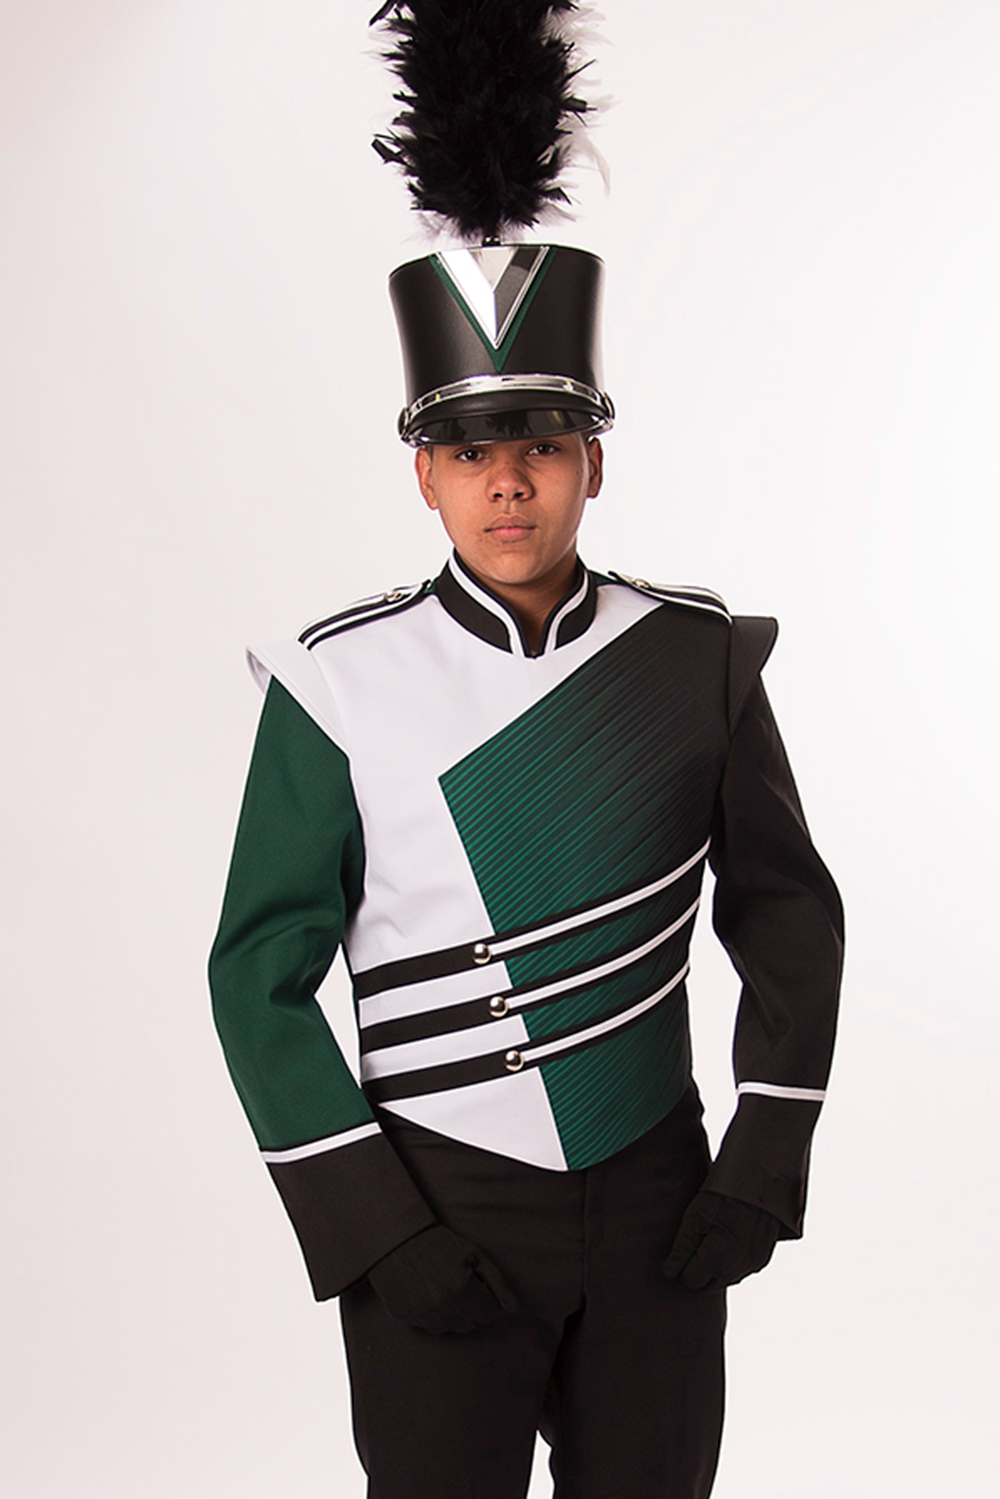 Picture This Outfit But Solid And Bright Yellow Including The Plume Band Uniforms Marching Band Uniforms Marching Band